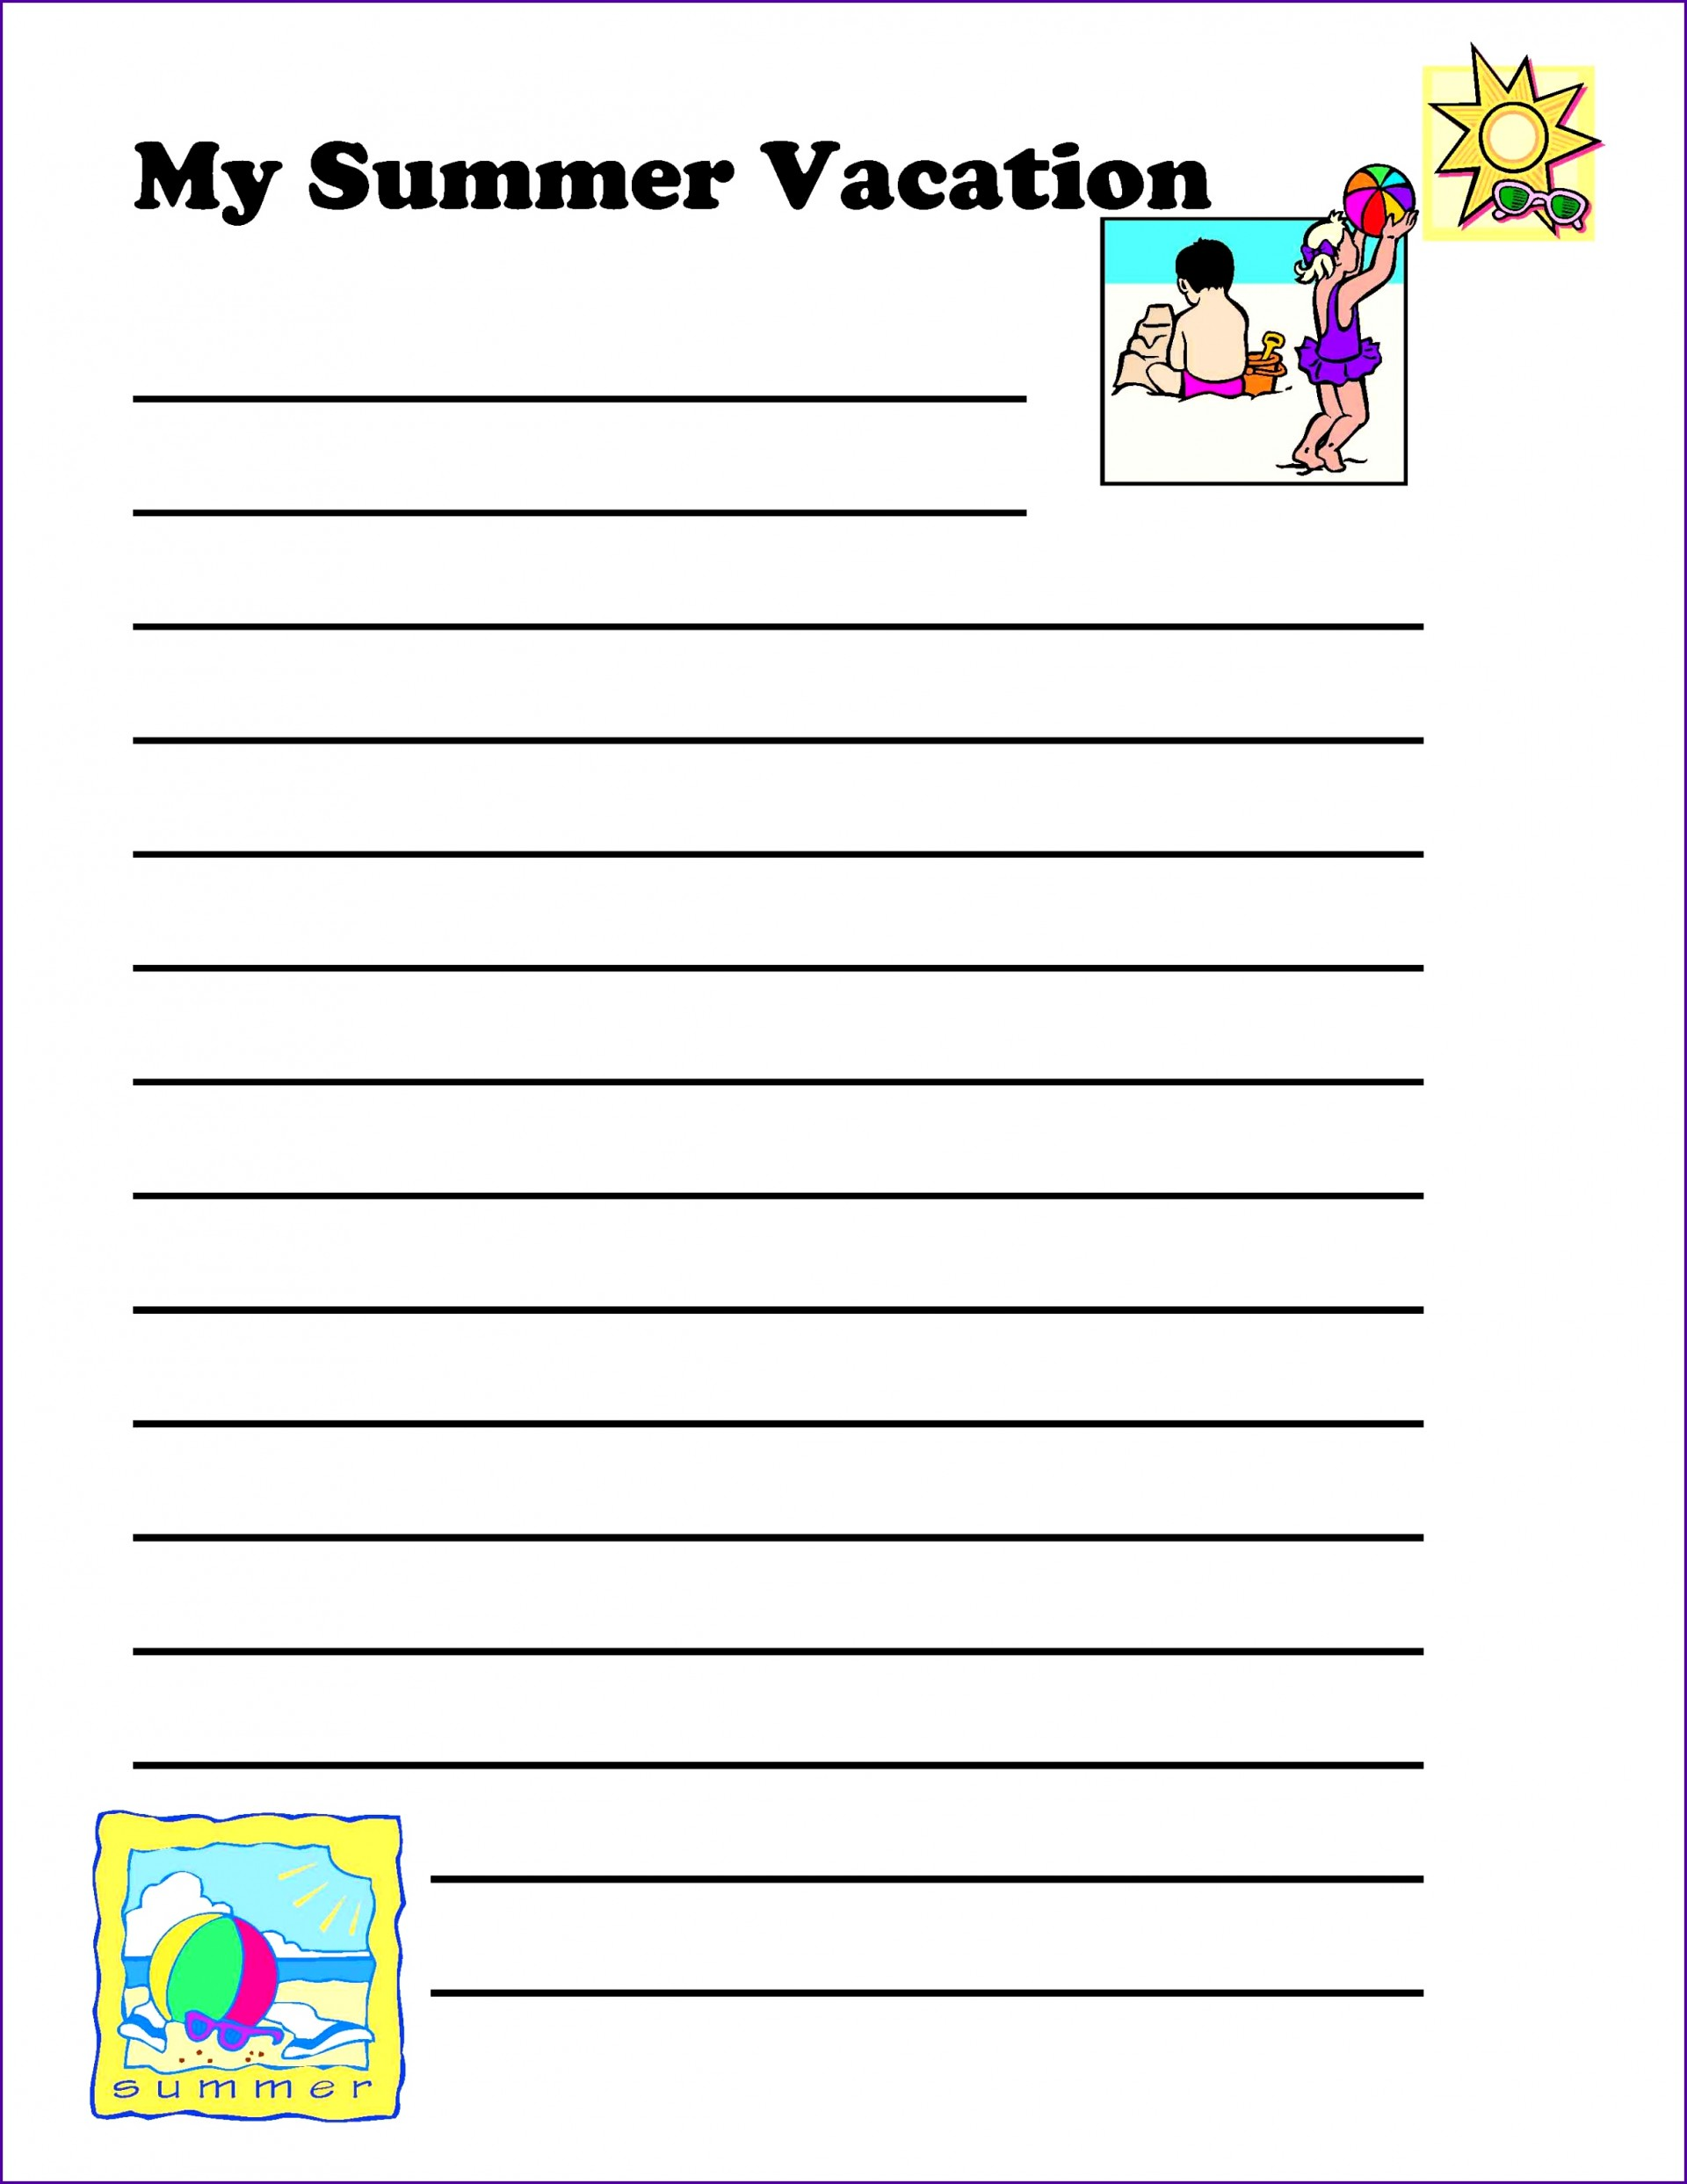 025 Summer Vacation Essay Holiday Planner Template For Admission Writing Plan Euyozr New Frightening Class 6 In Urdu On Marathi 1920